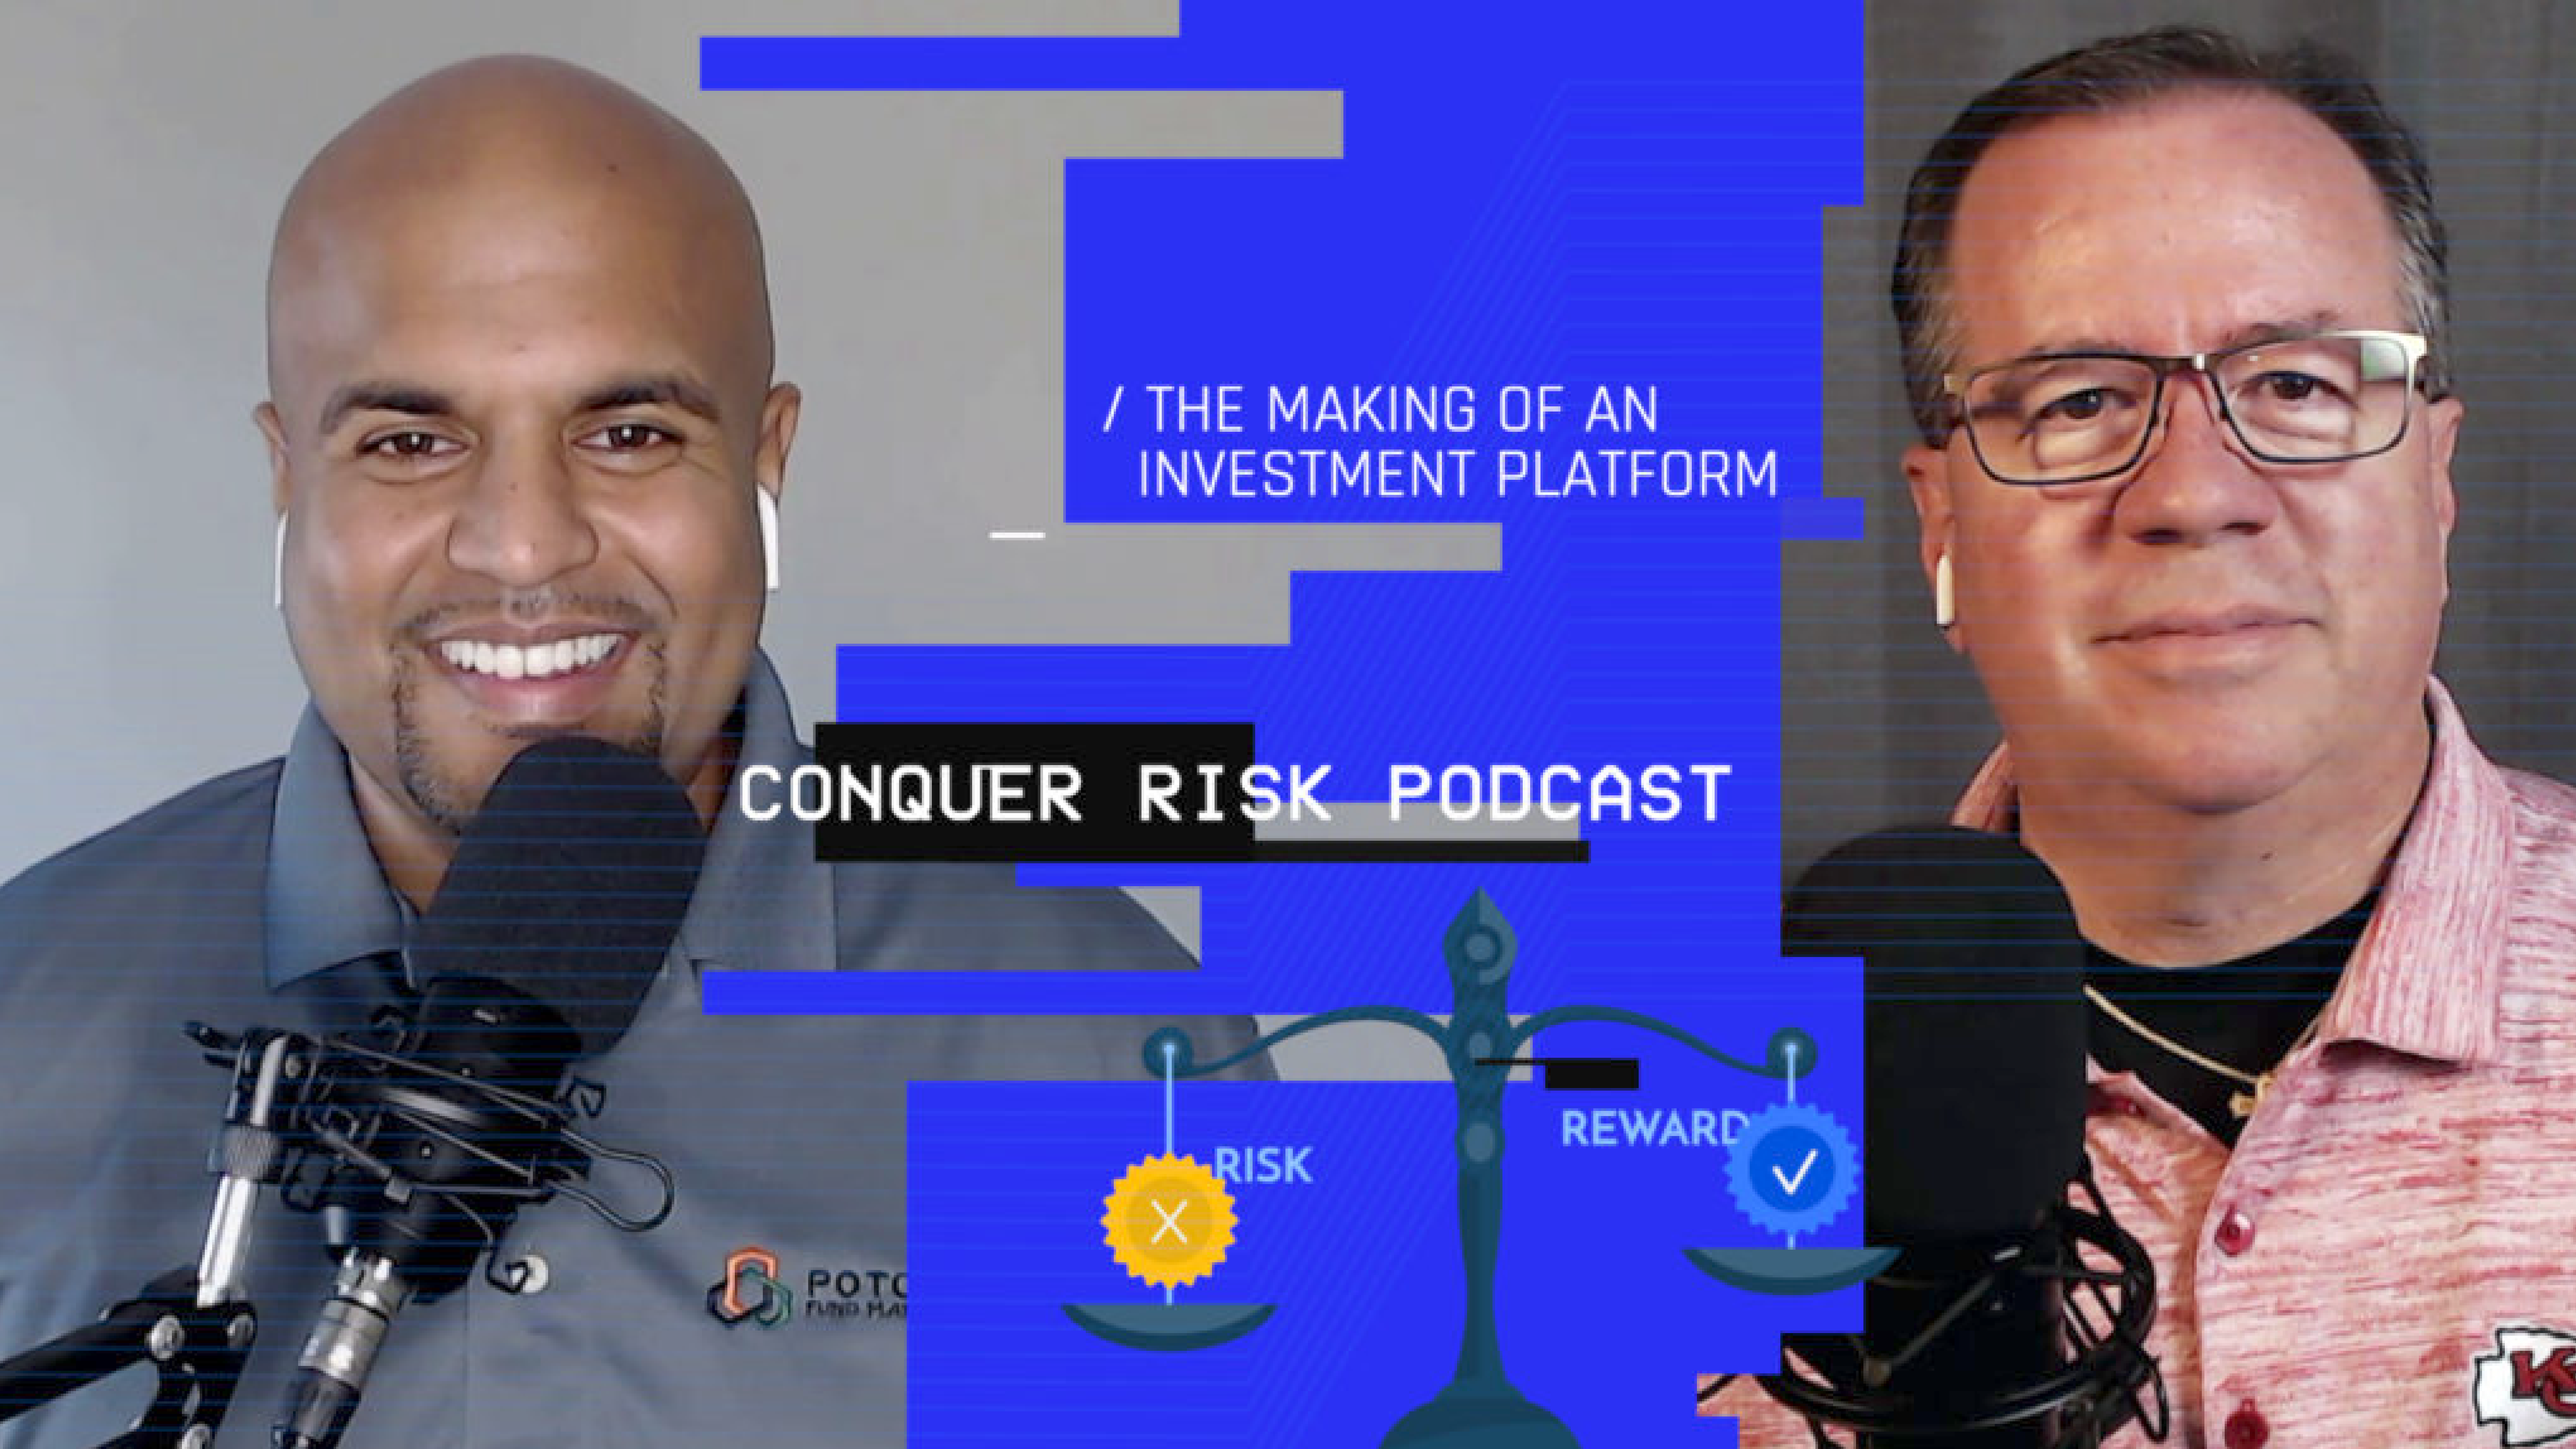 The Making of an Investment Platform (S2 E1)